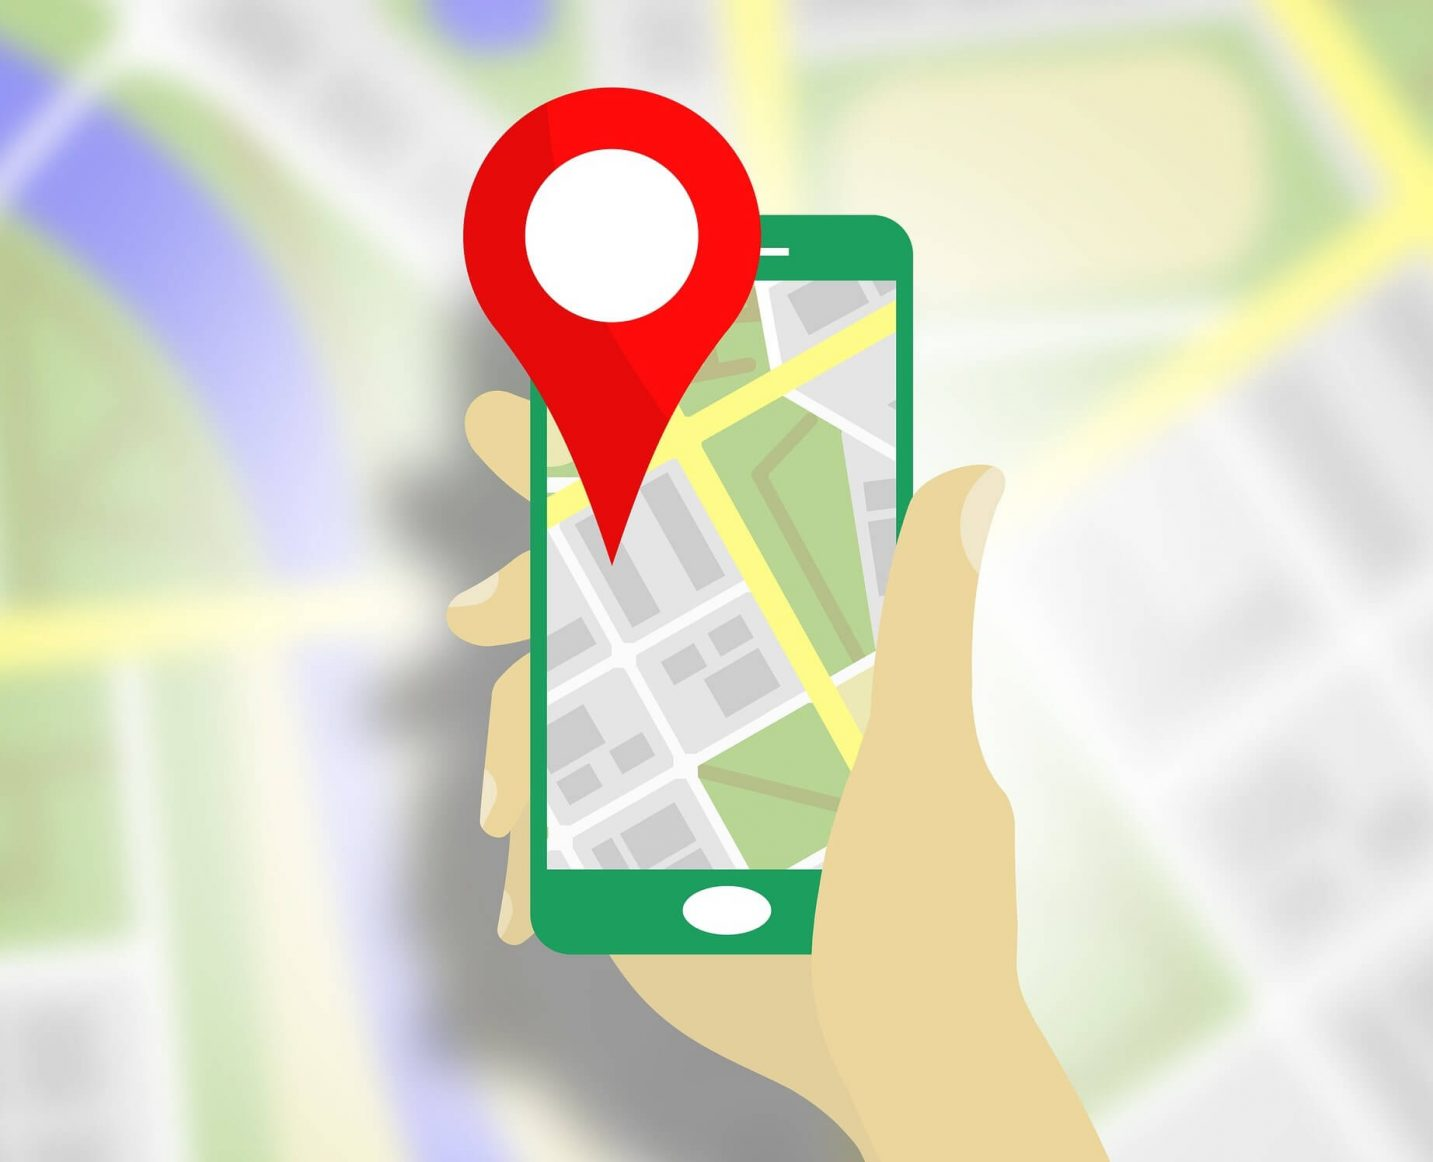 GPS Tracking App: Is It Right To Track Someone's Location?